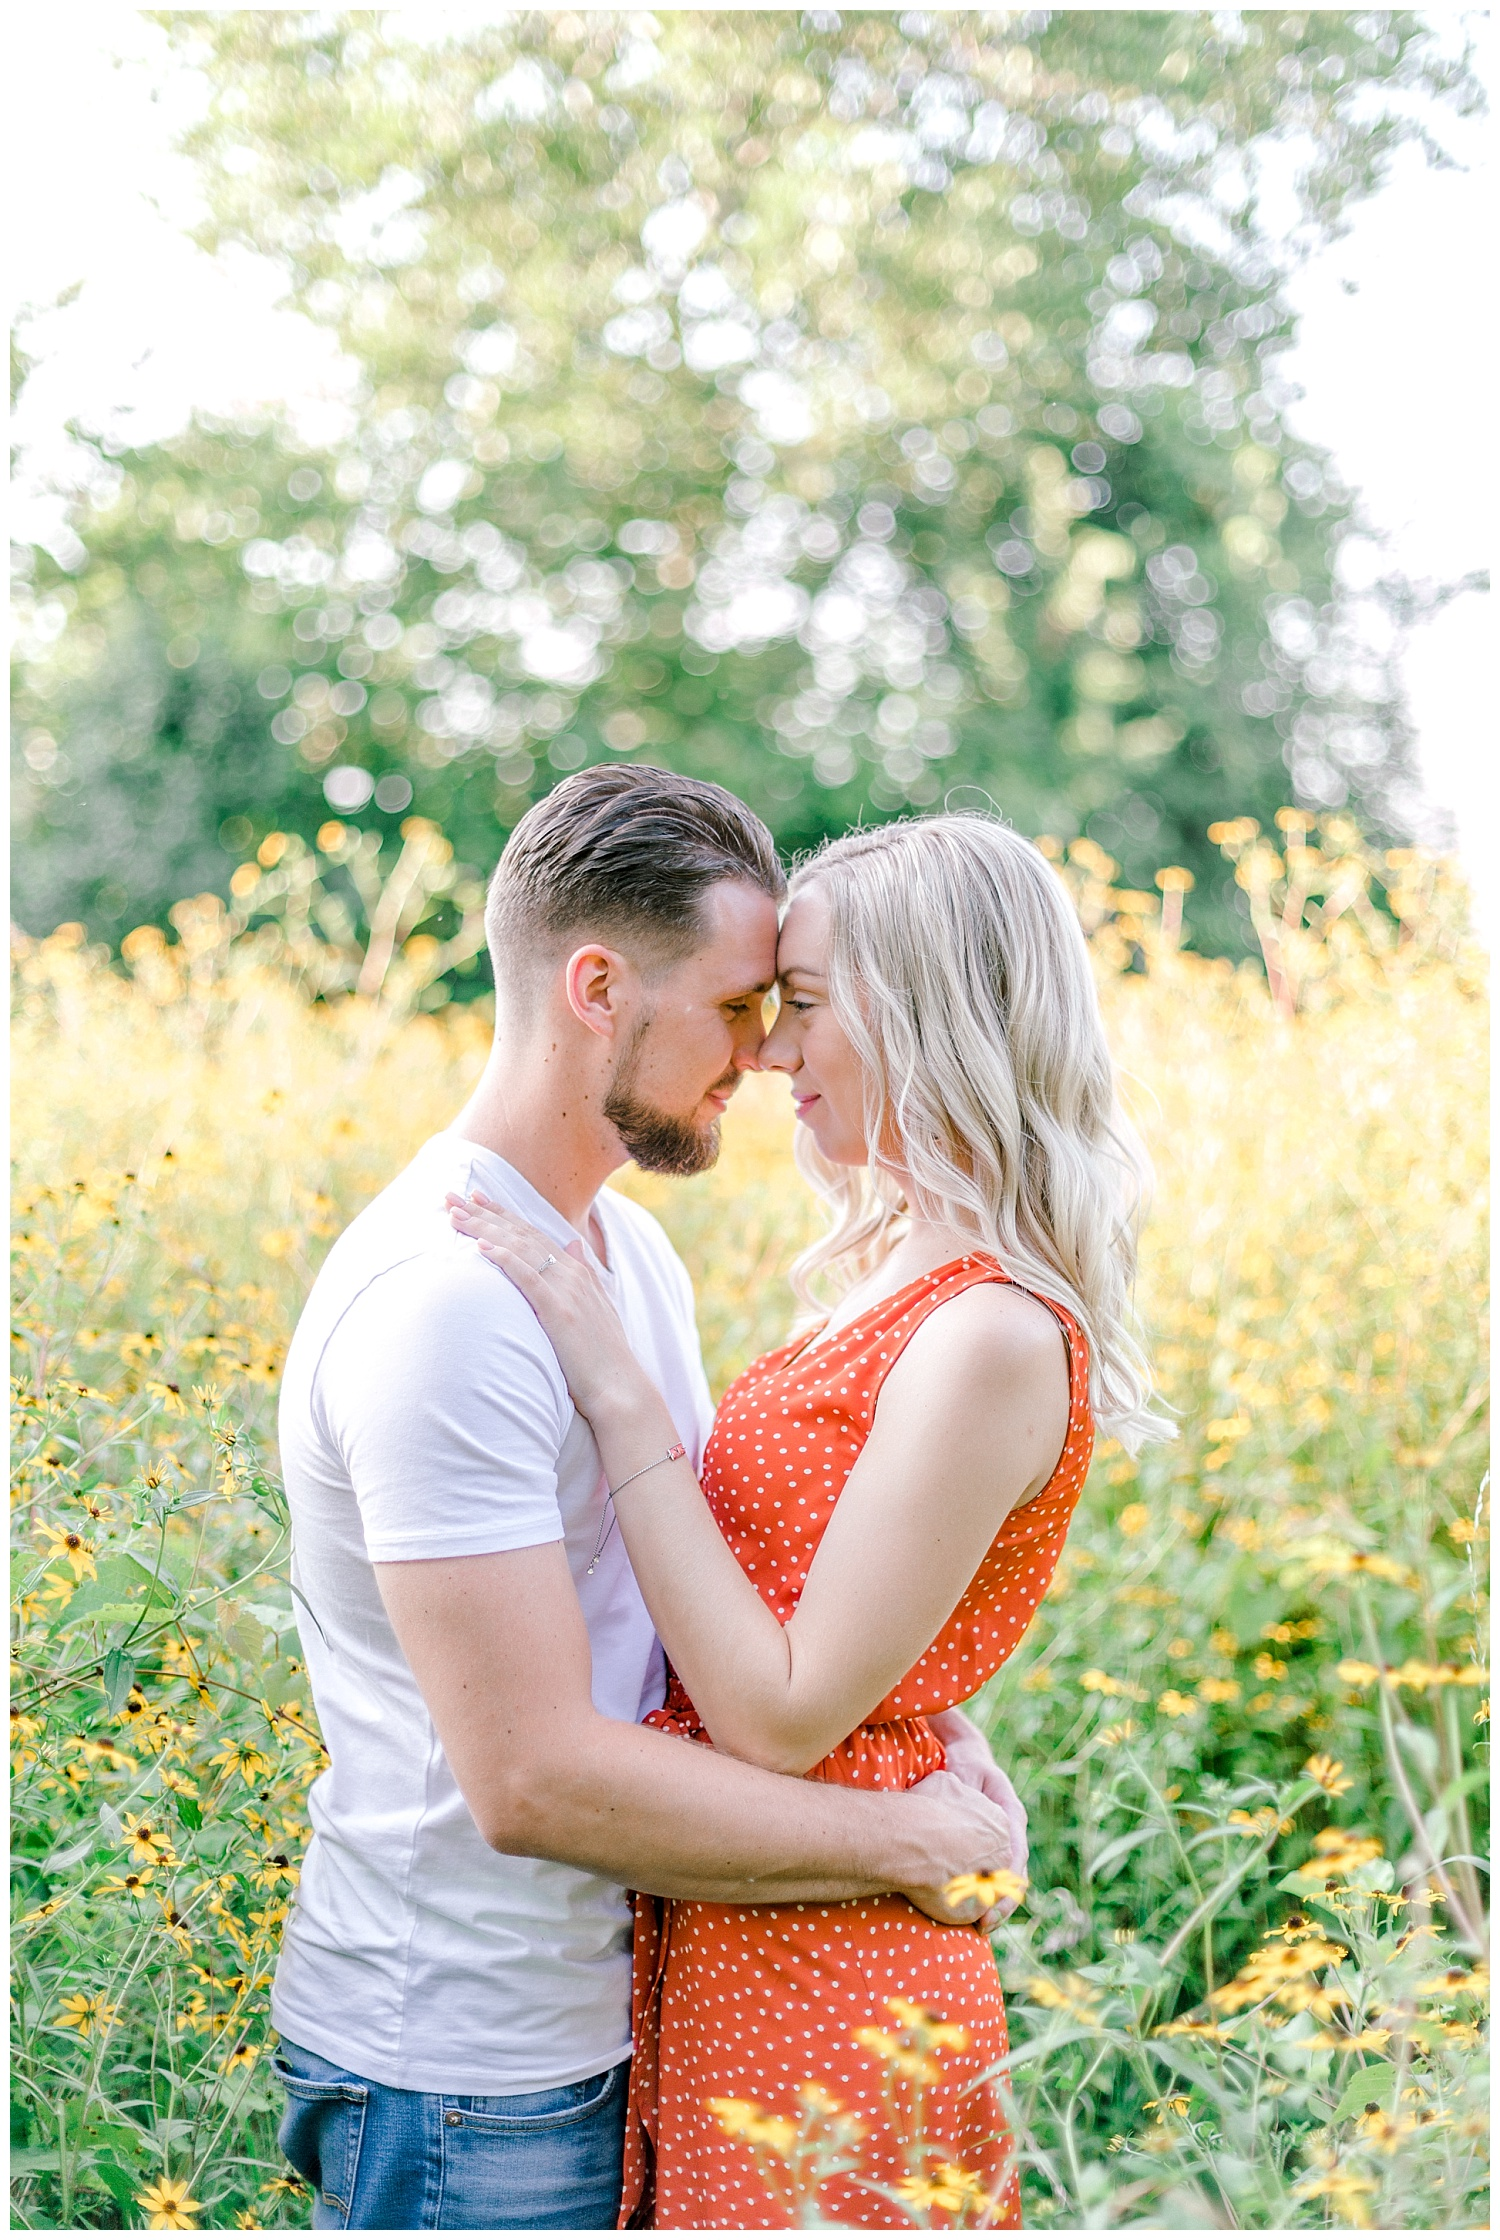 Blue Marsh Lake Reading Pennsylvania flower field golden hour engagement session by PA based wedding and lifestyle photographer Lytle photography_0008.jpg